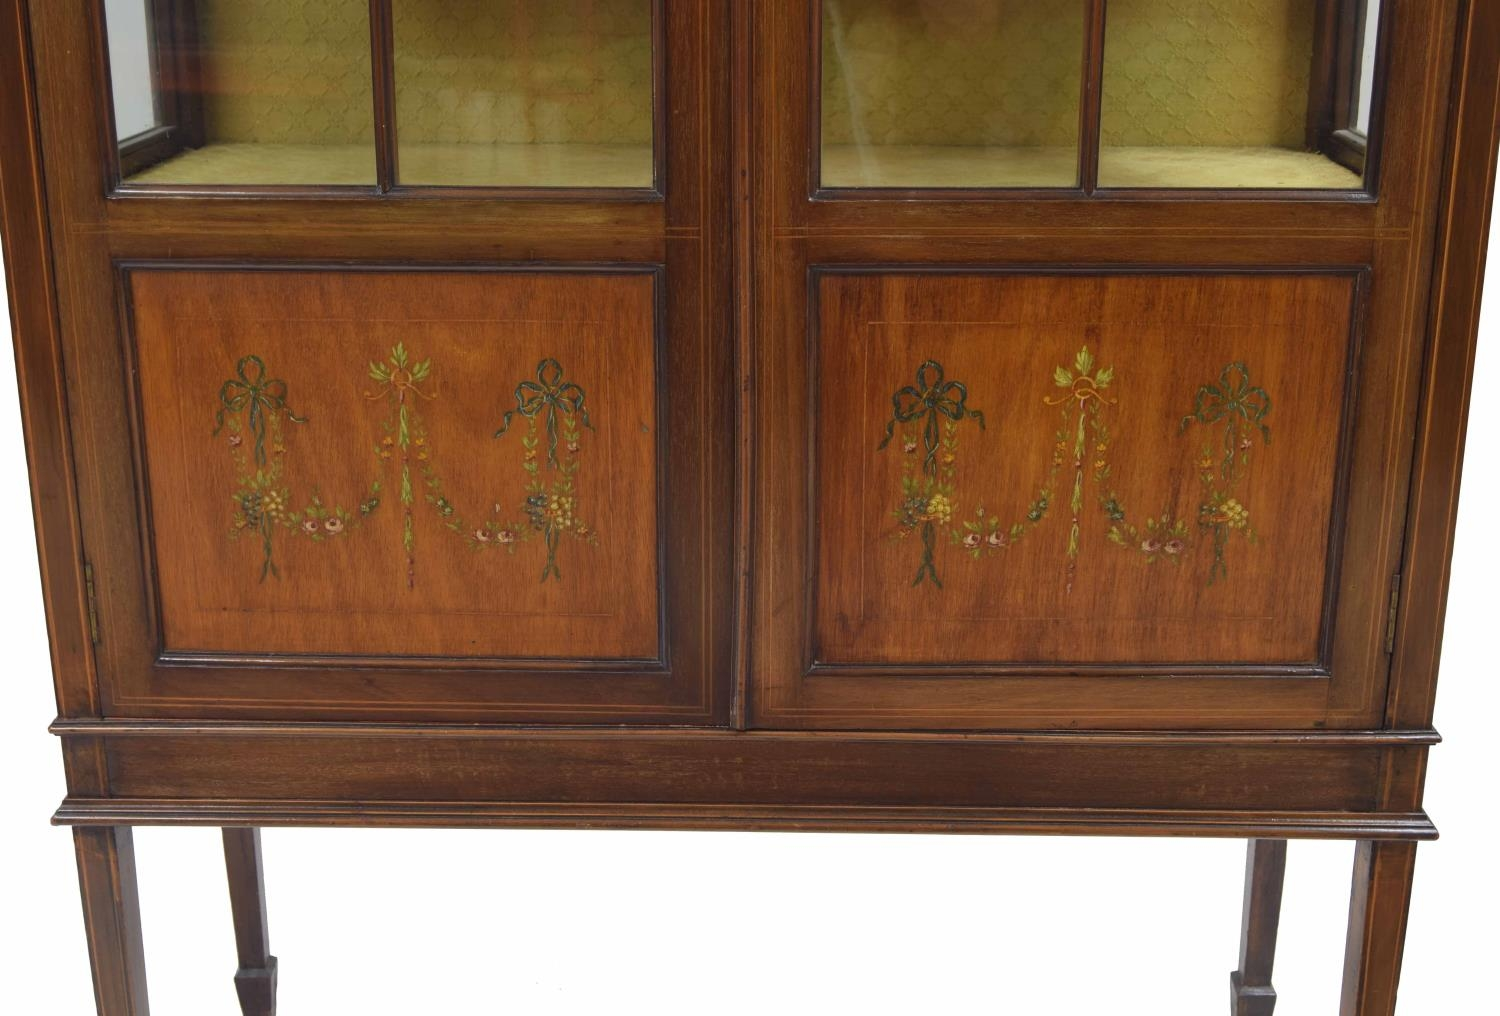 Edwardian mahogany inlaid and painted display cabinet painted with floral harebell garlands with two - Image 2 of 2